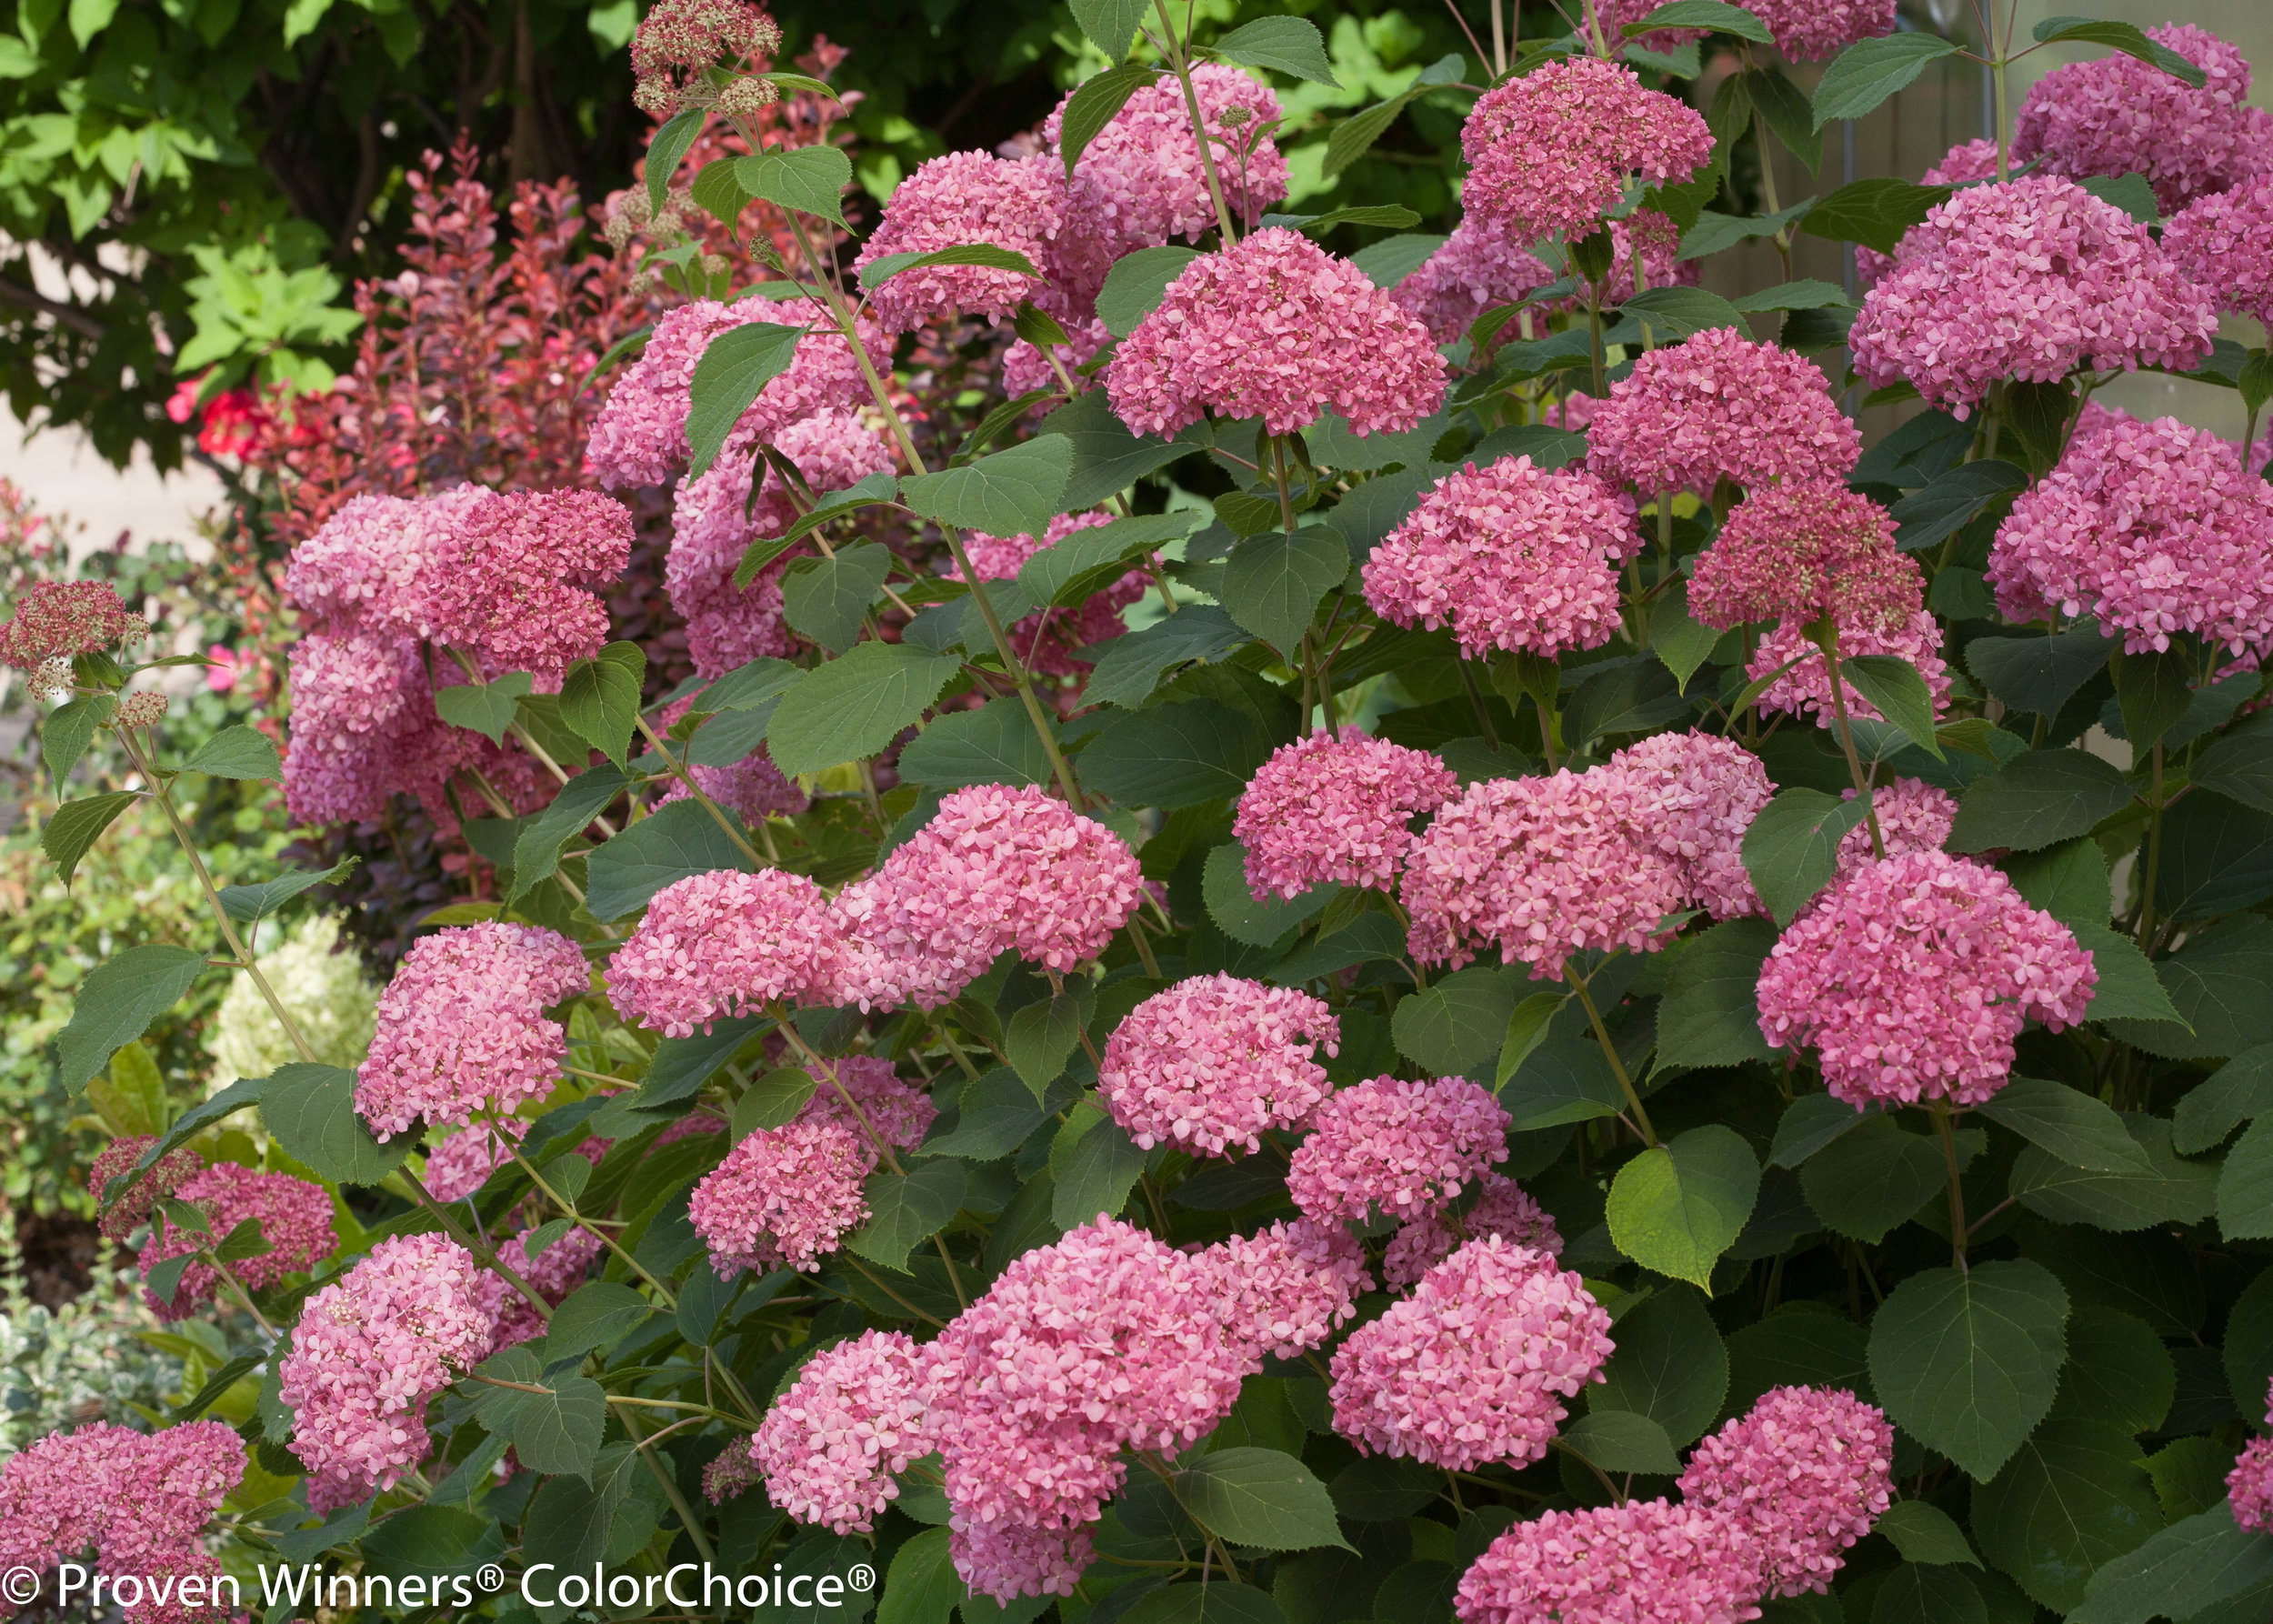 Hydrangea arborescens 'Invincibelle Spirit II ' is pink and supports the research to end breast cancer.  Check out how this hydrangea helps support this cause.